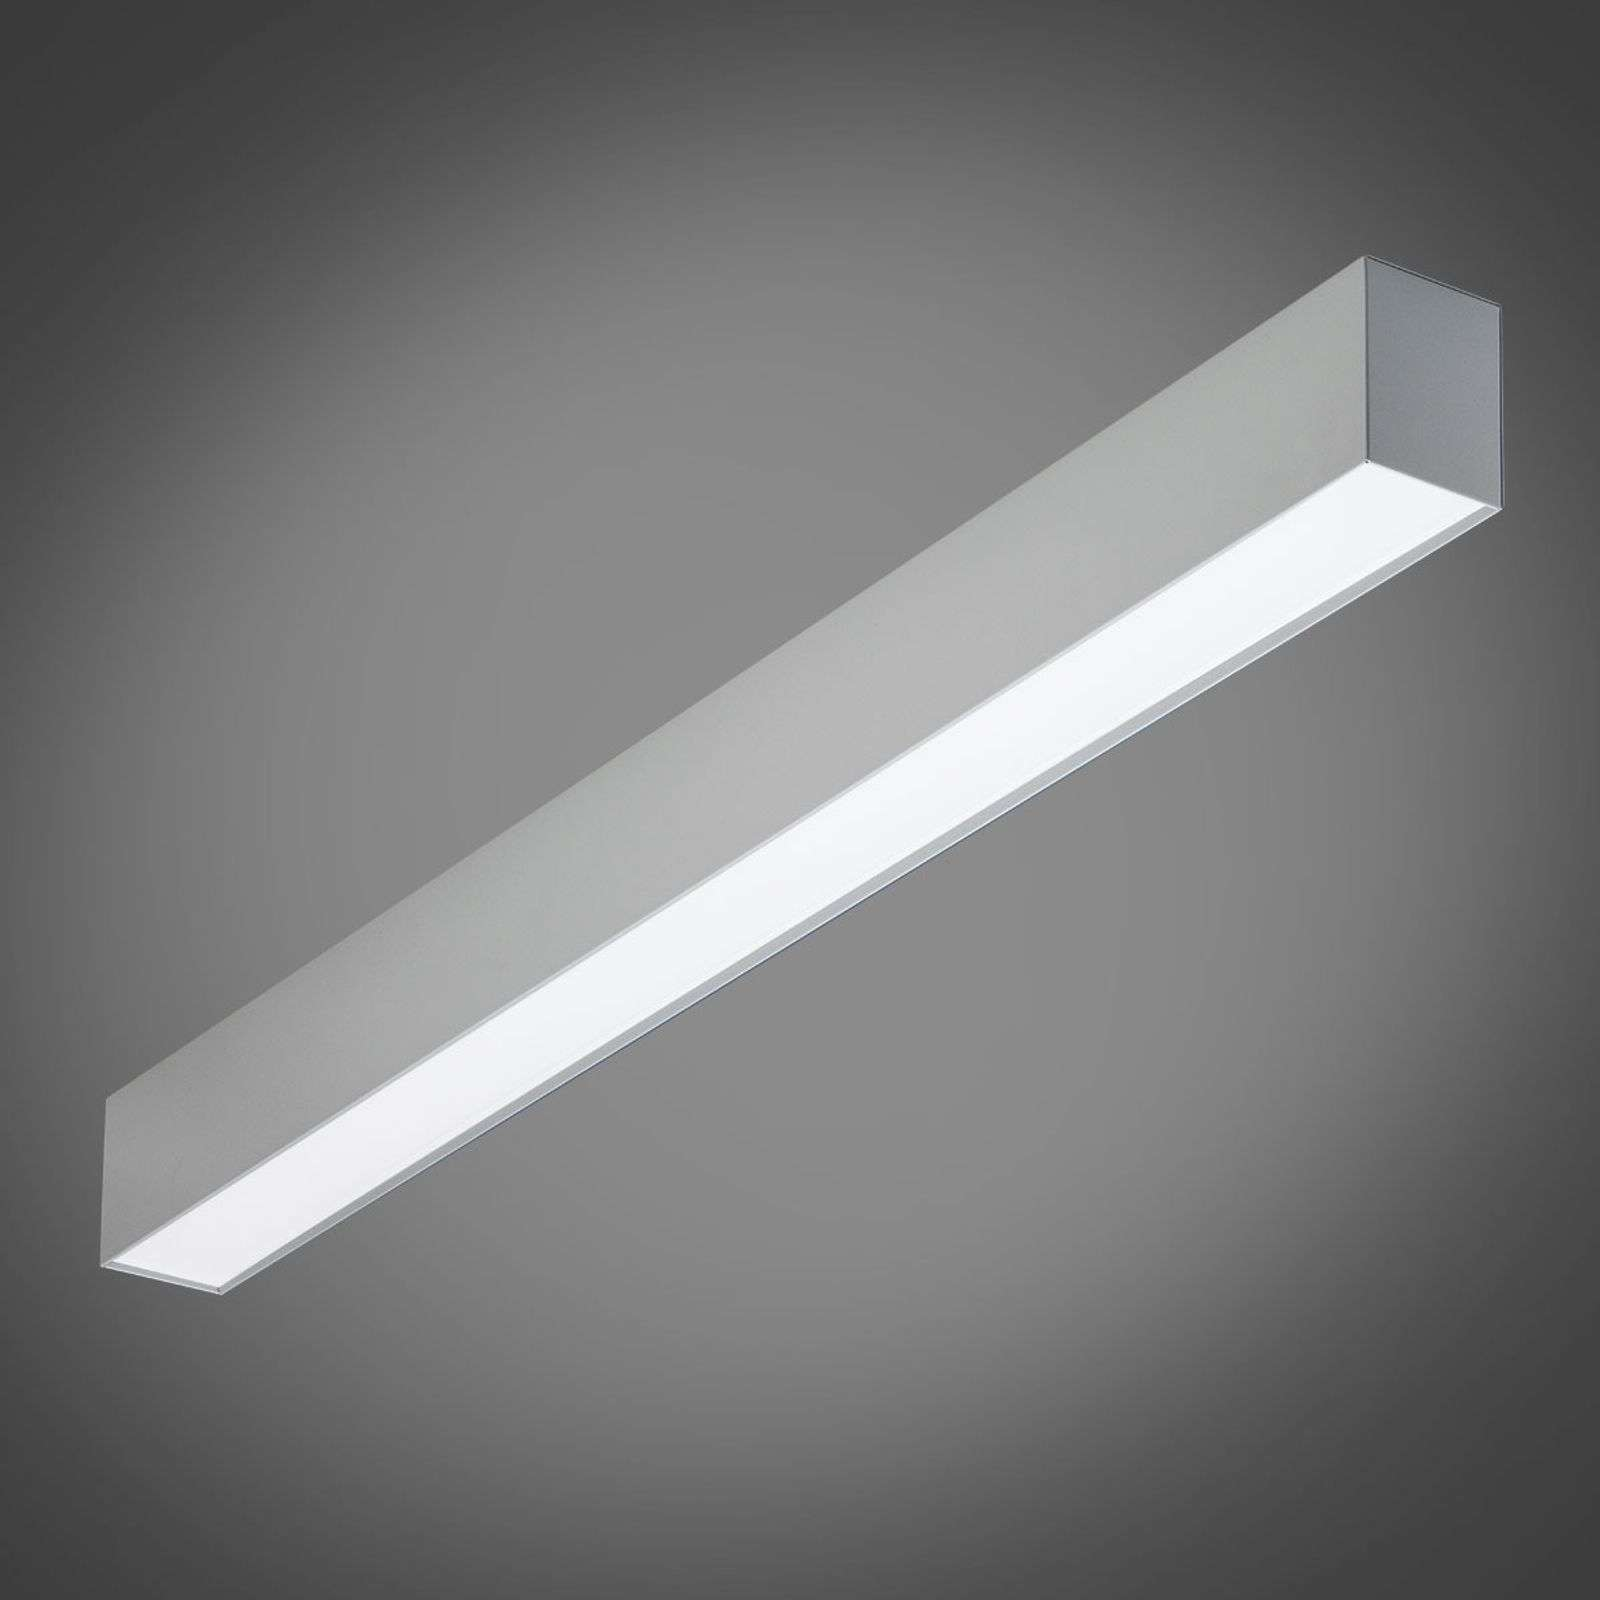 Applique LED LIPW075 efficace en énergie, 3 000 K